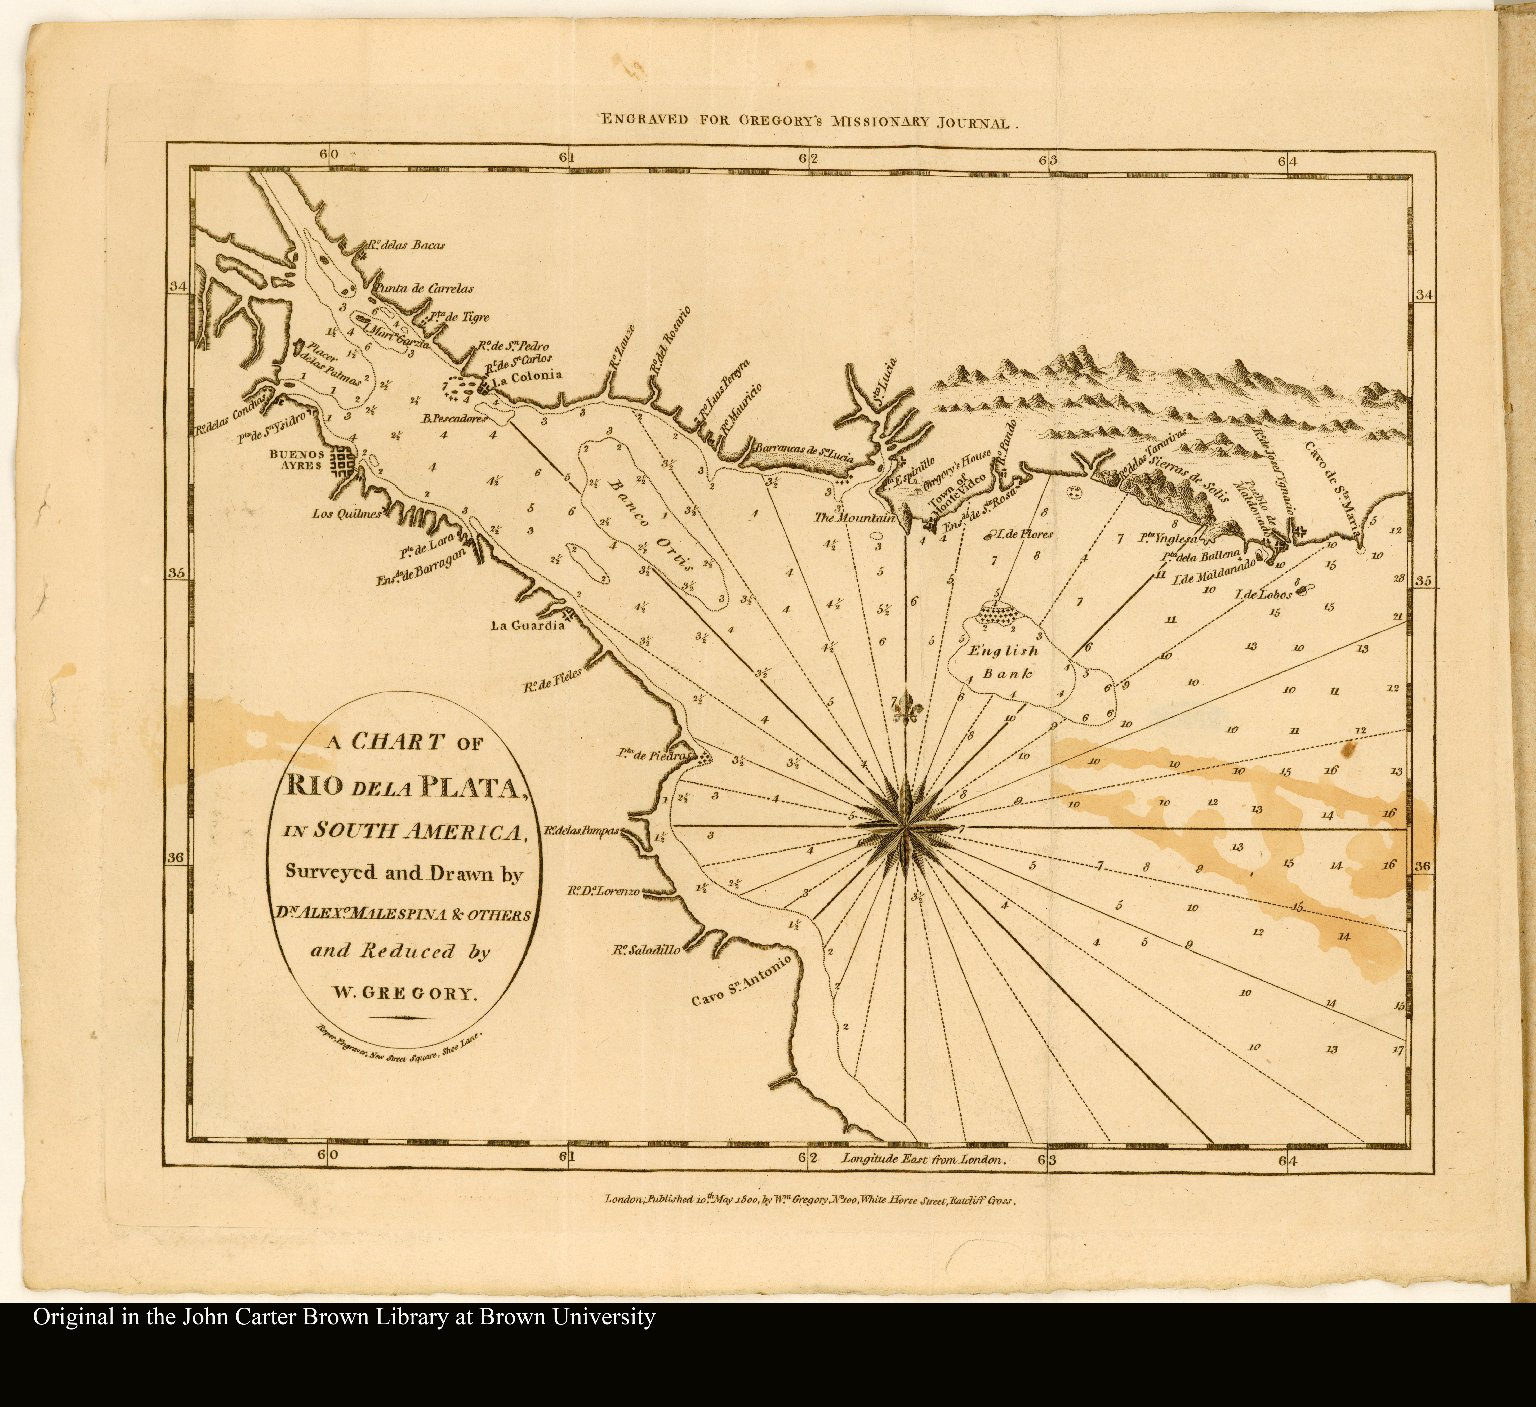 A Chart of Rio de la Plata, in South America, Surveyed and Drawn by Dn. Alexo. Malespina & Others and Reduced by W. Gregory.